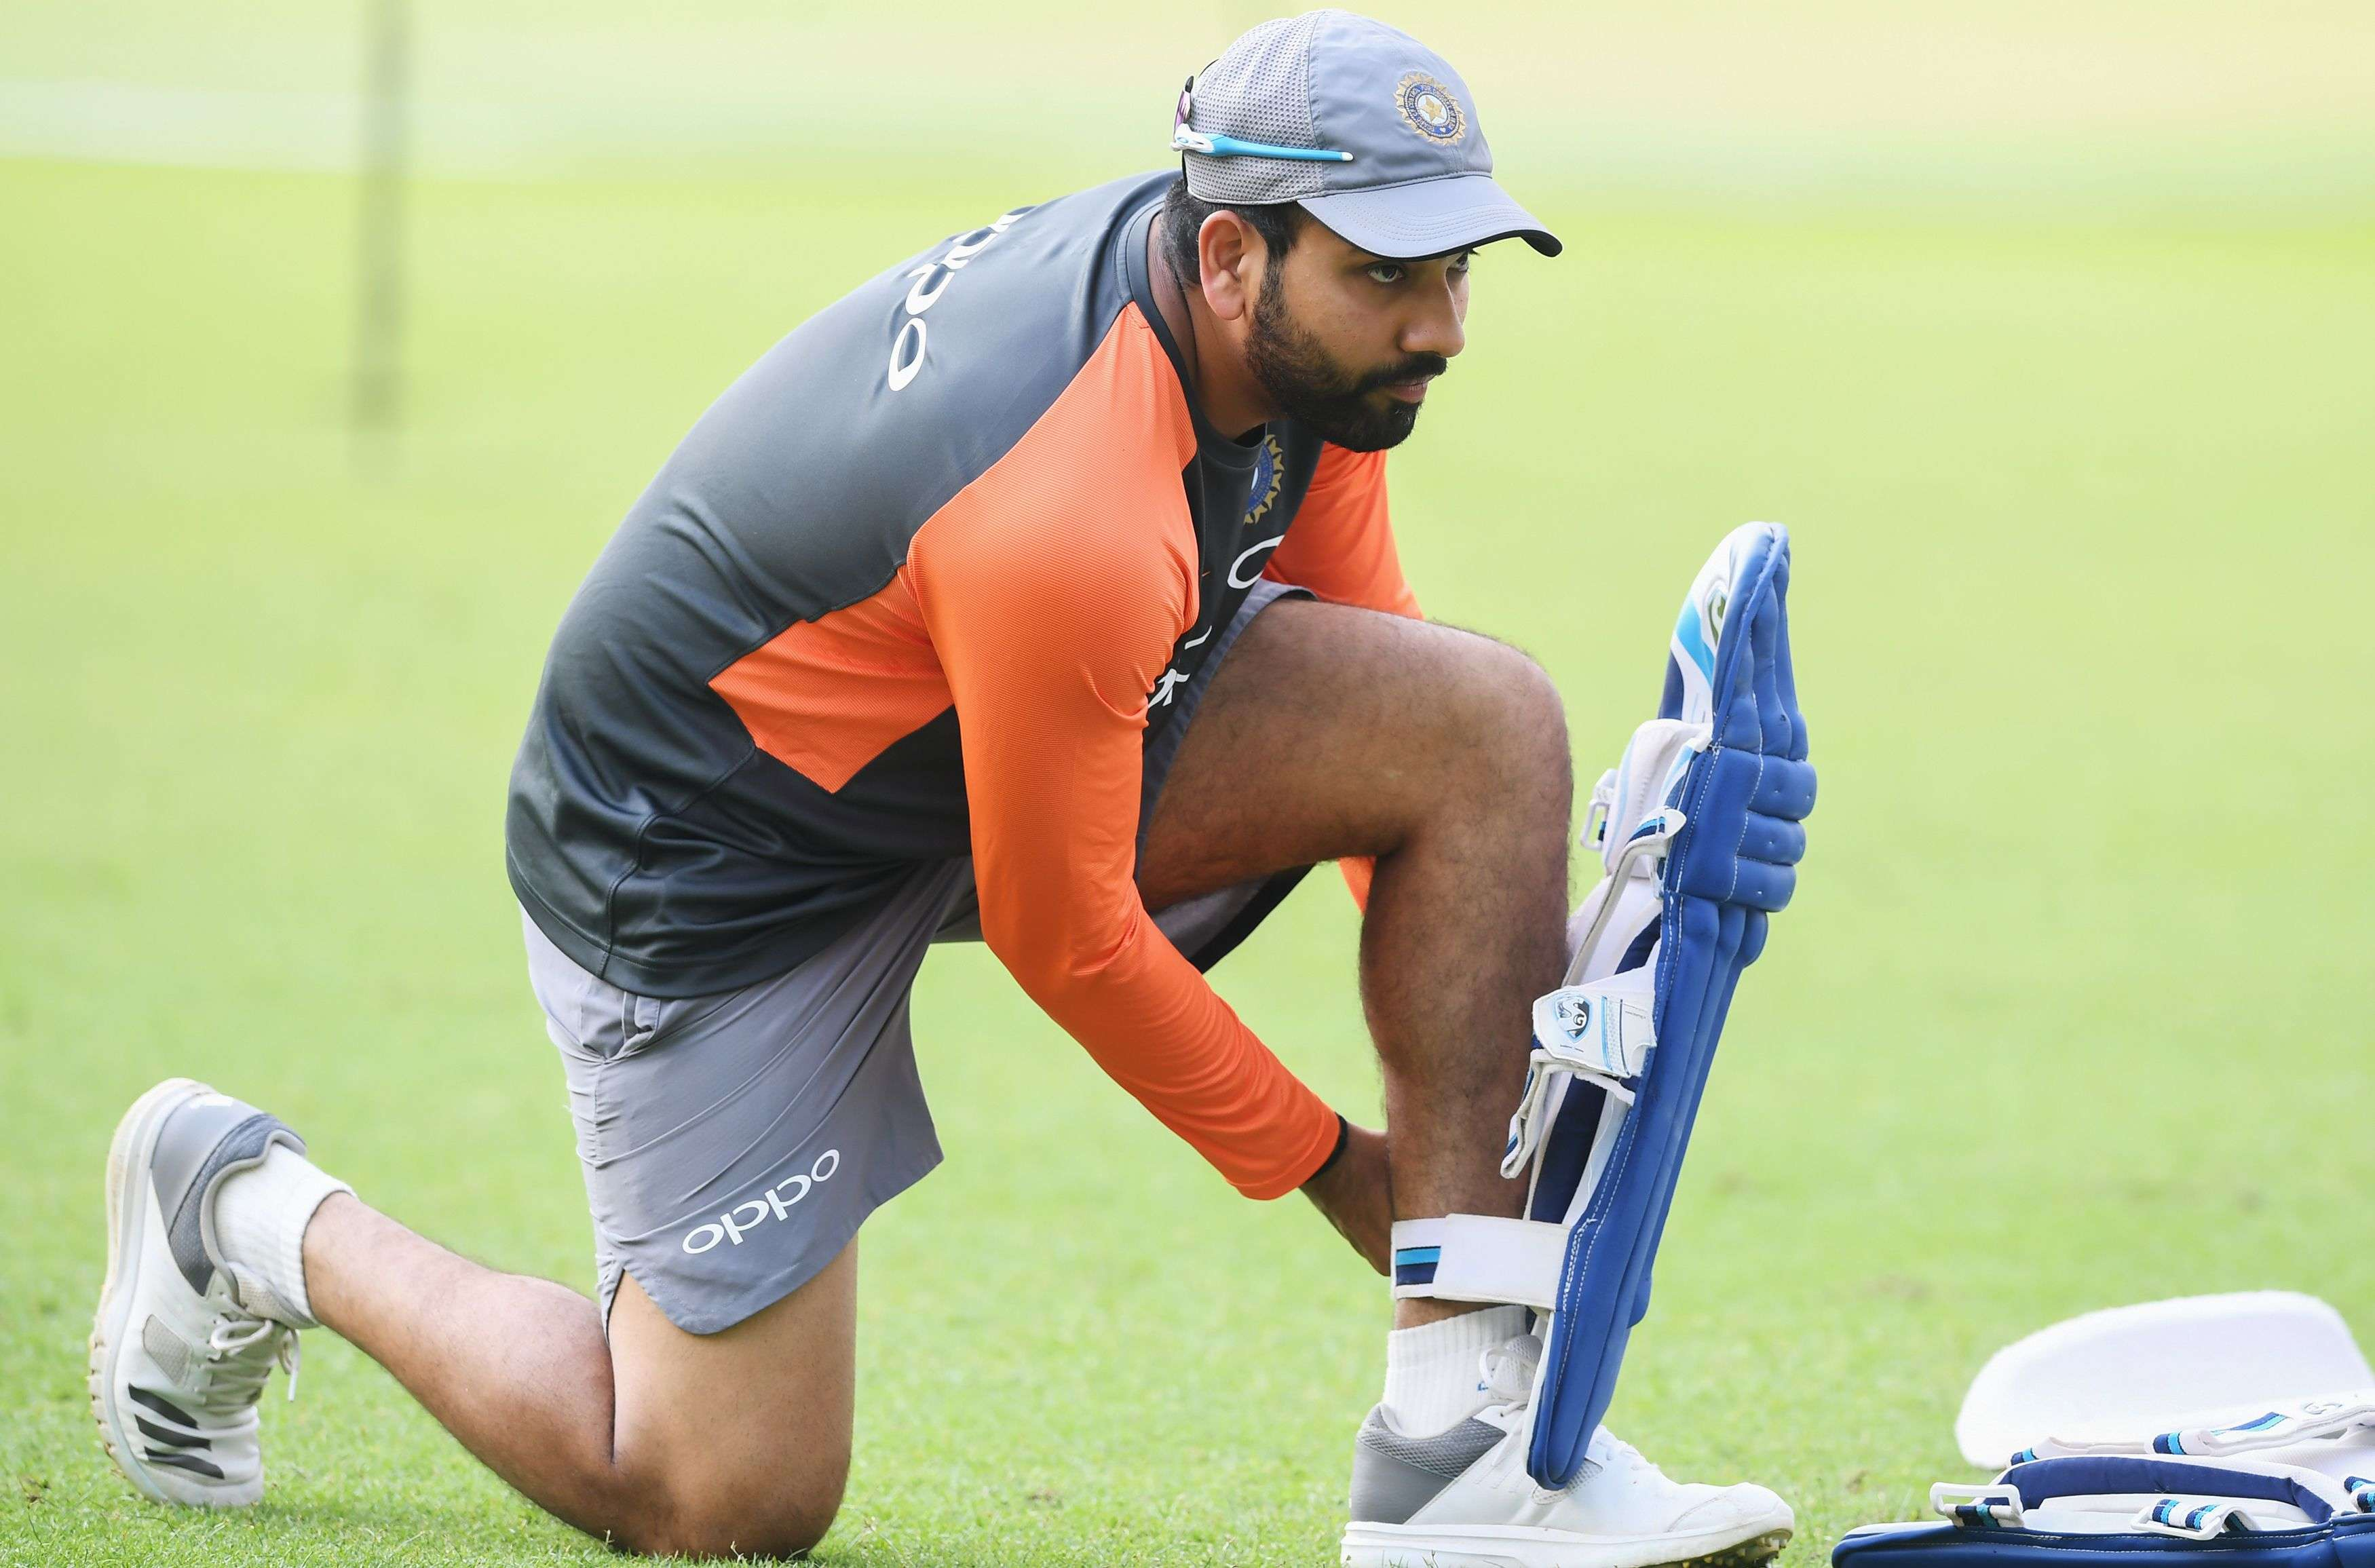 rohit-sharma-wants-to-start-with-a-clean-slate-in-australia